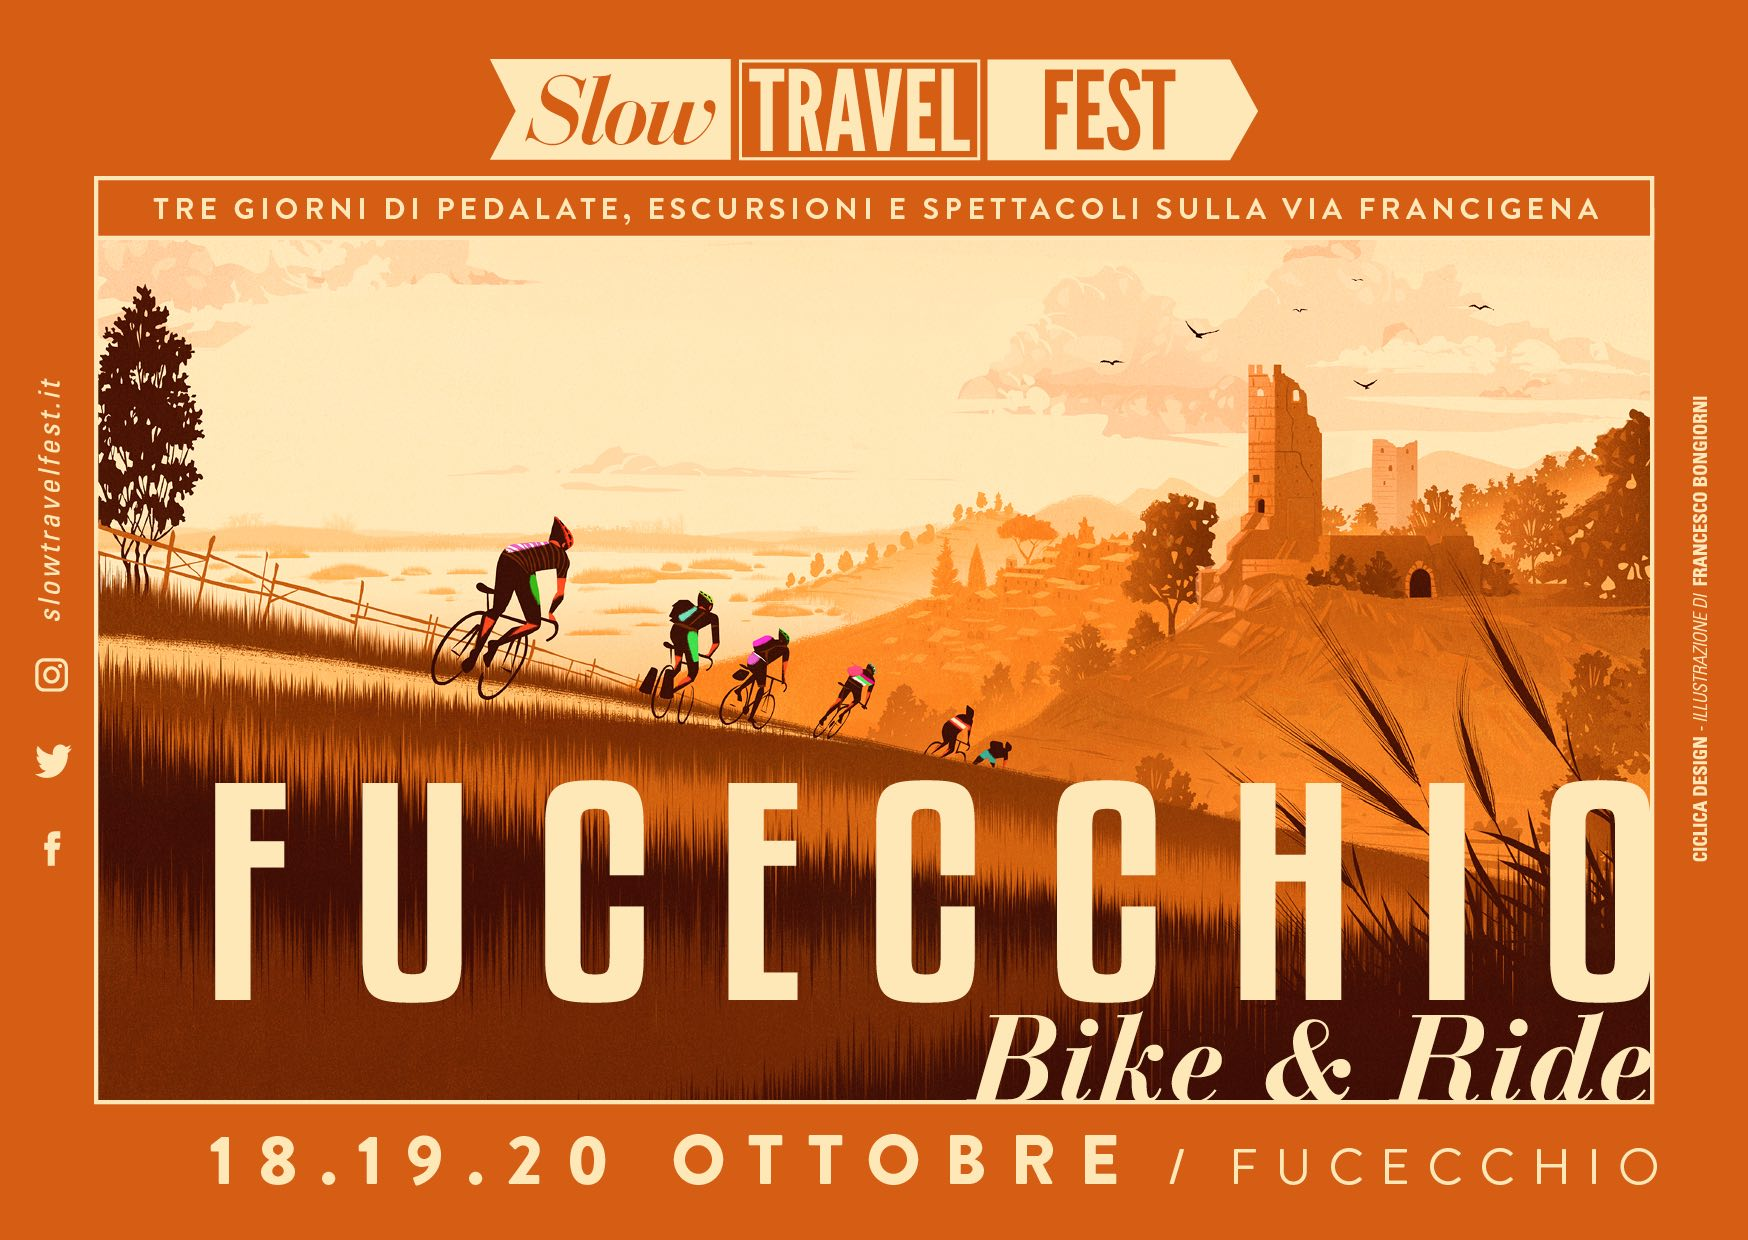 Fucecchio Bike & Ride